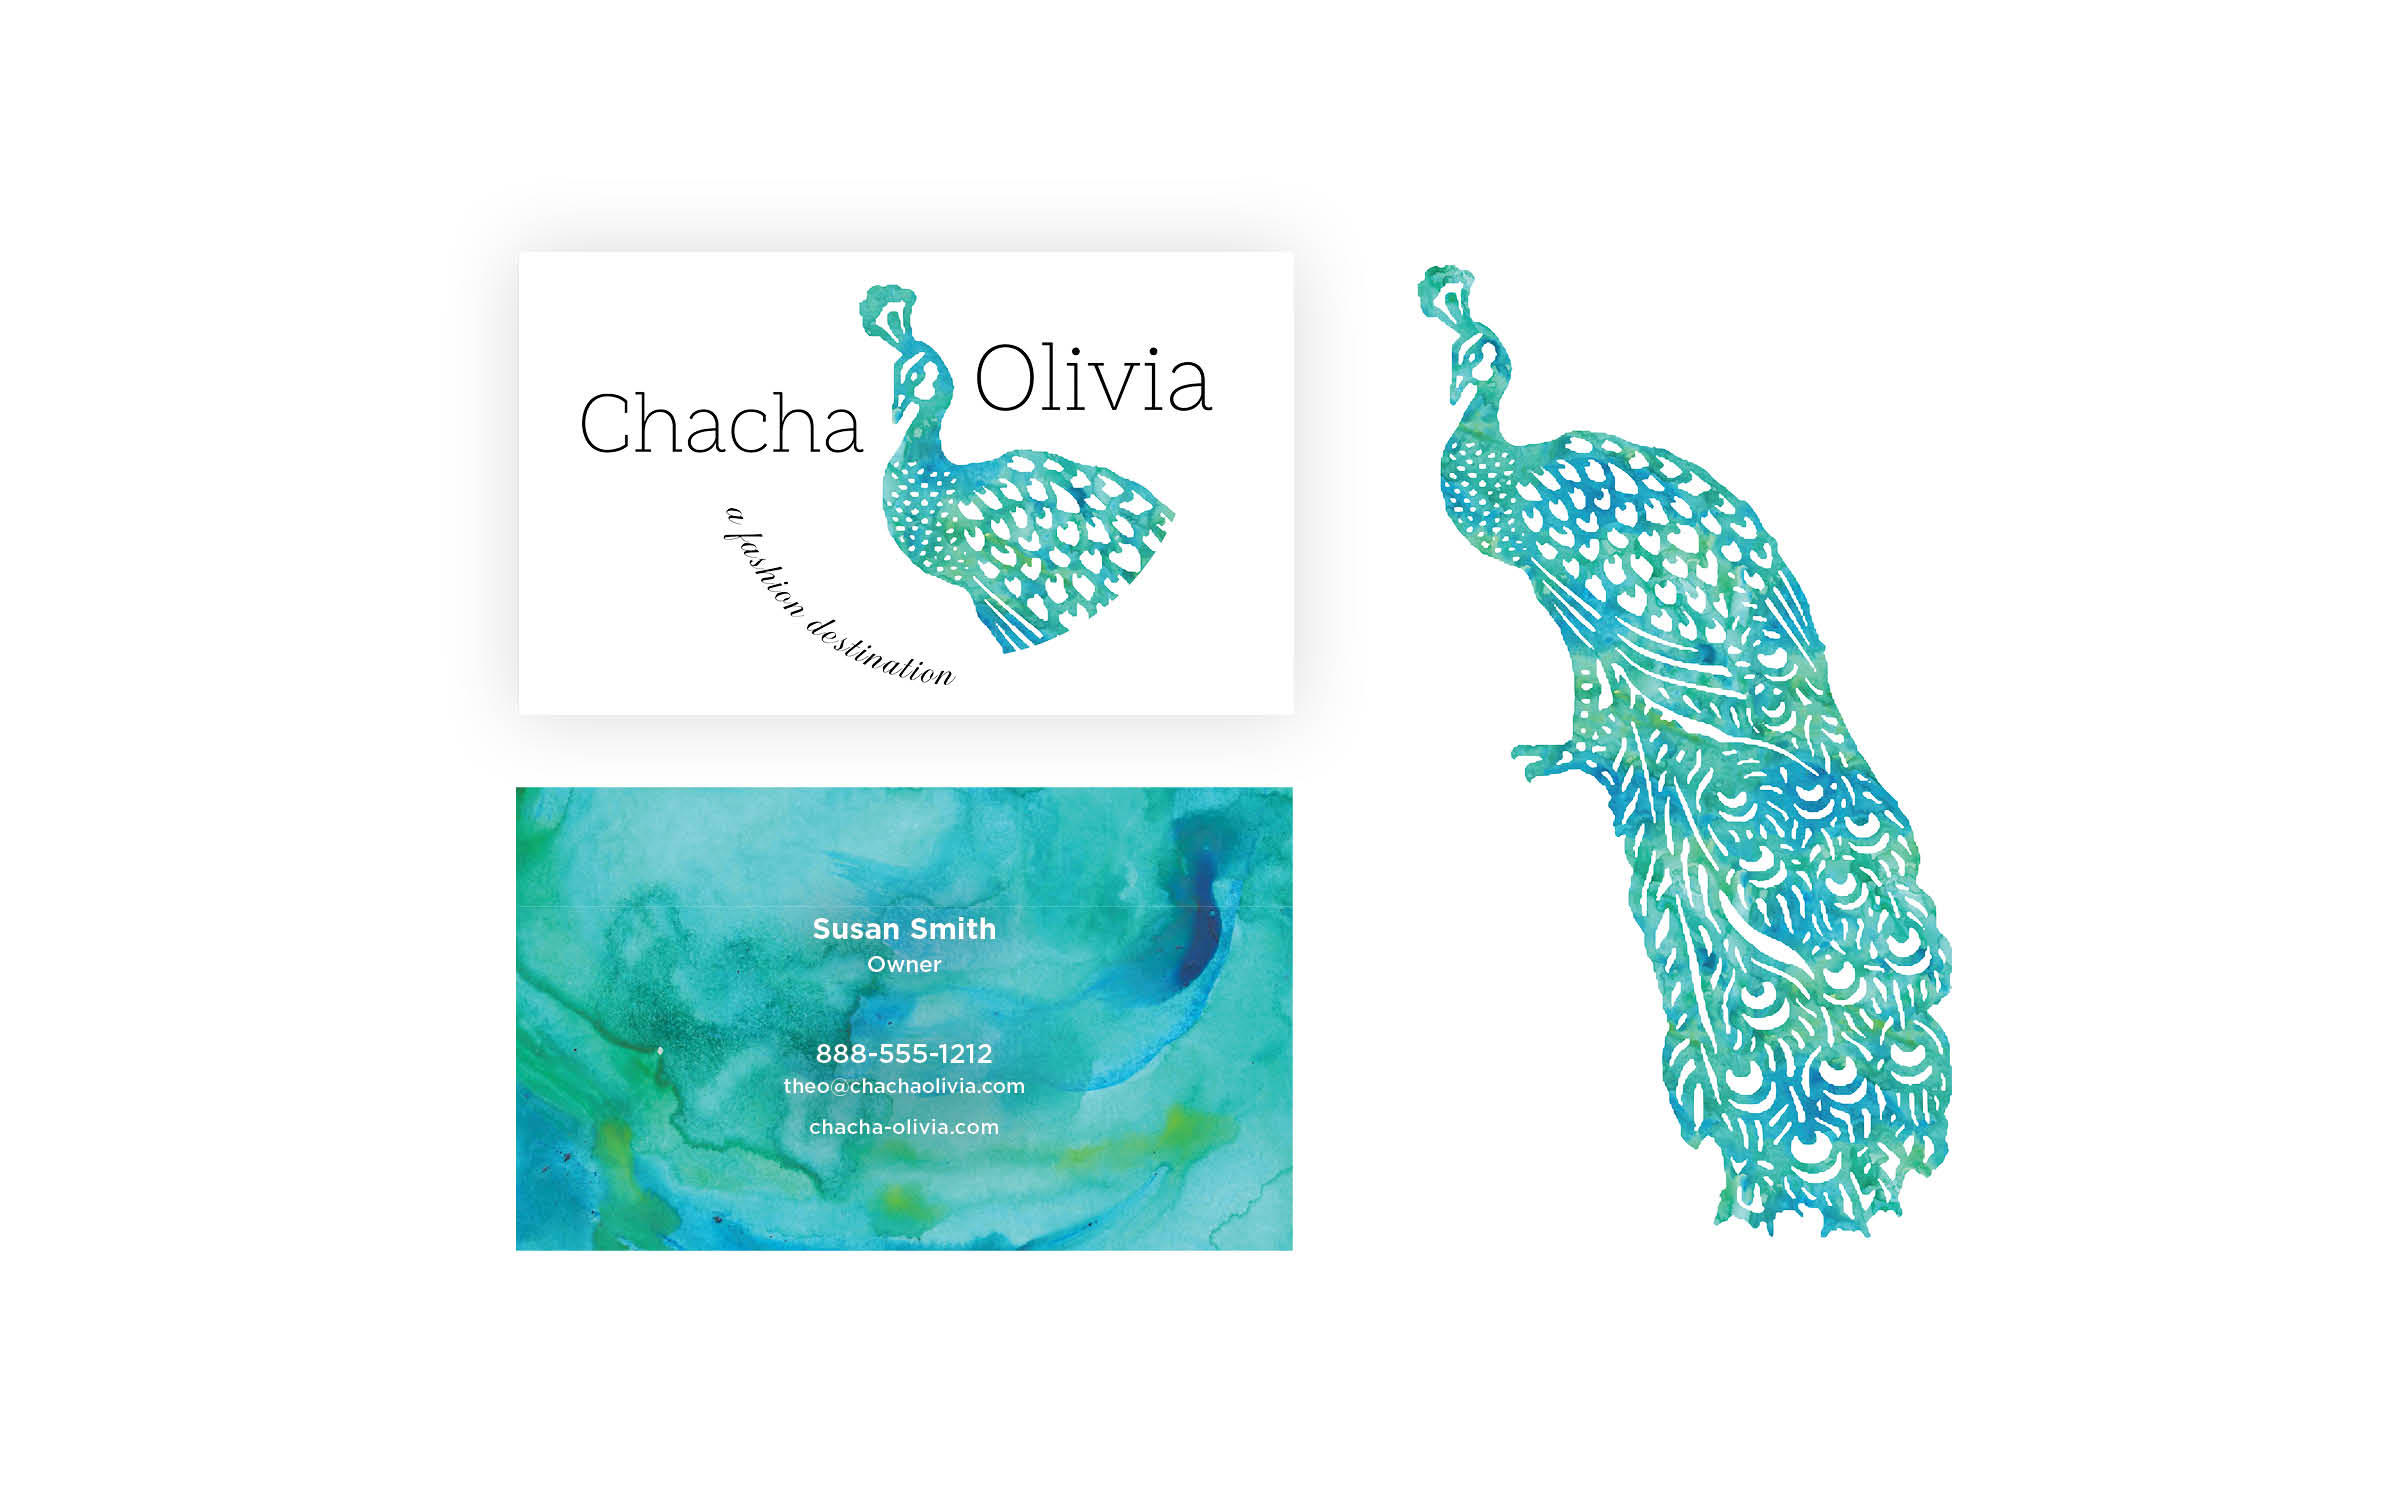 hight resolution of chacha olivia for squarespace4 jpg